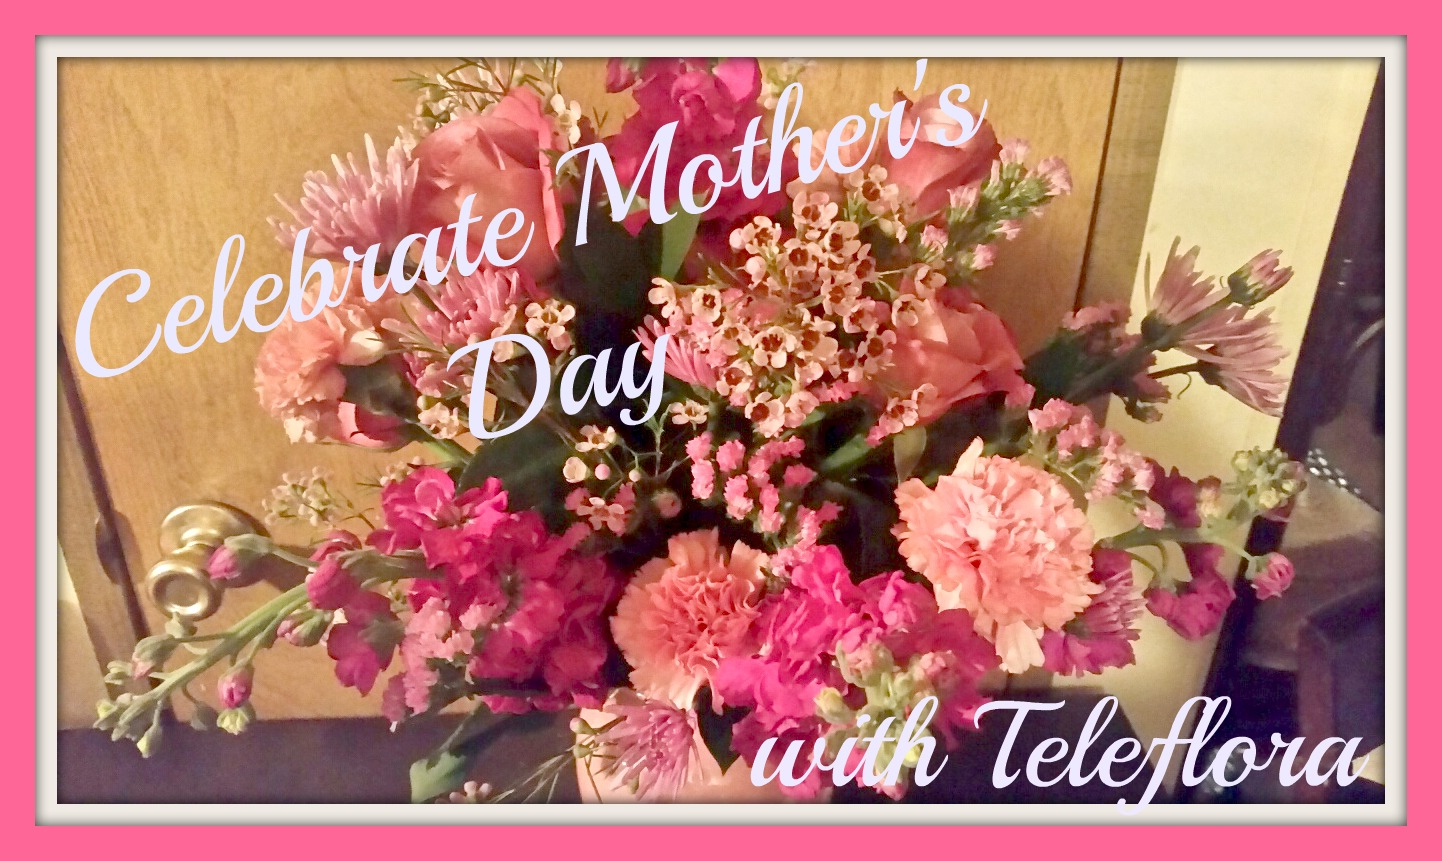 Every Mother deserves flowers on Mother\'s Day! #OneToughMother ...